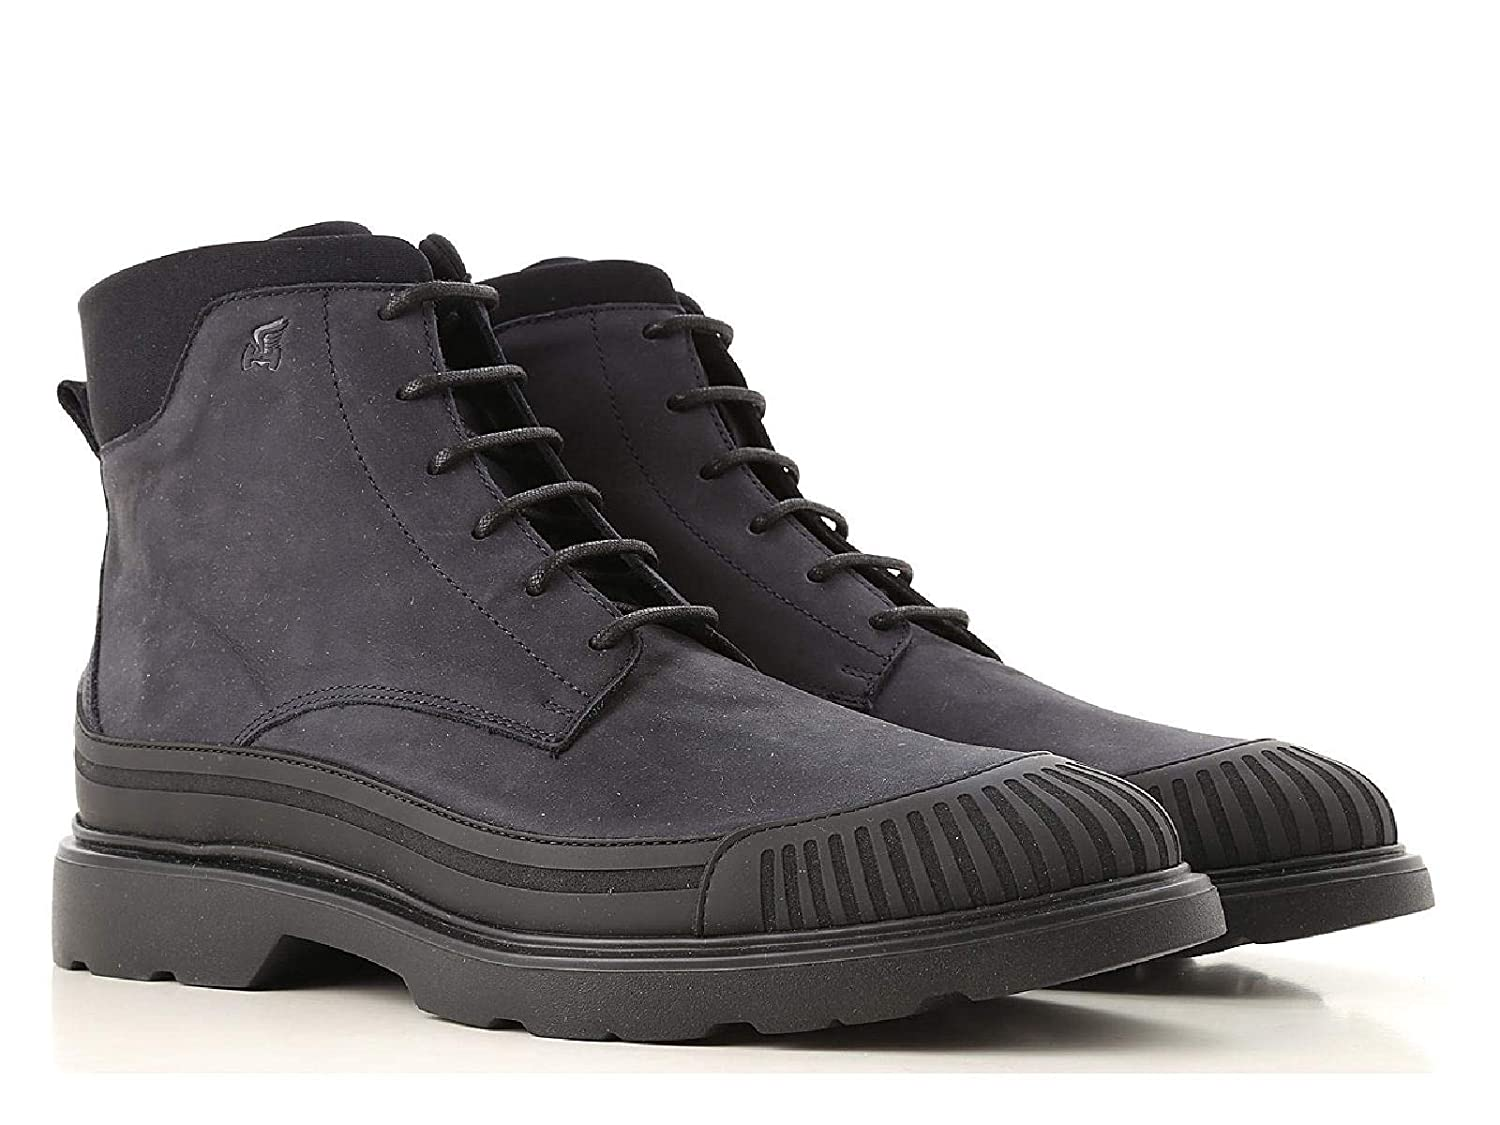 bluee Hogan Men's Leather Nubuck Low Boots shoes